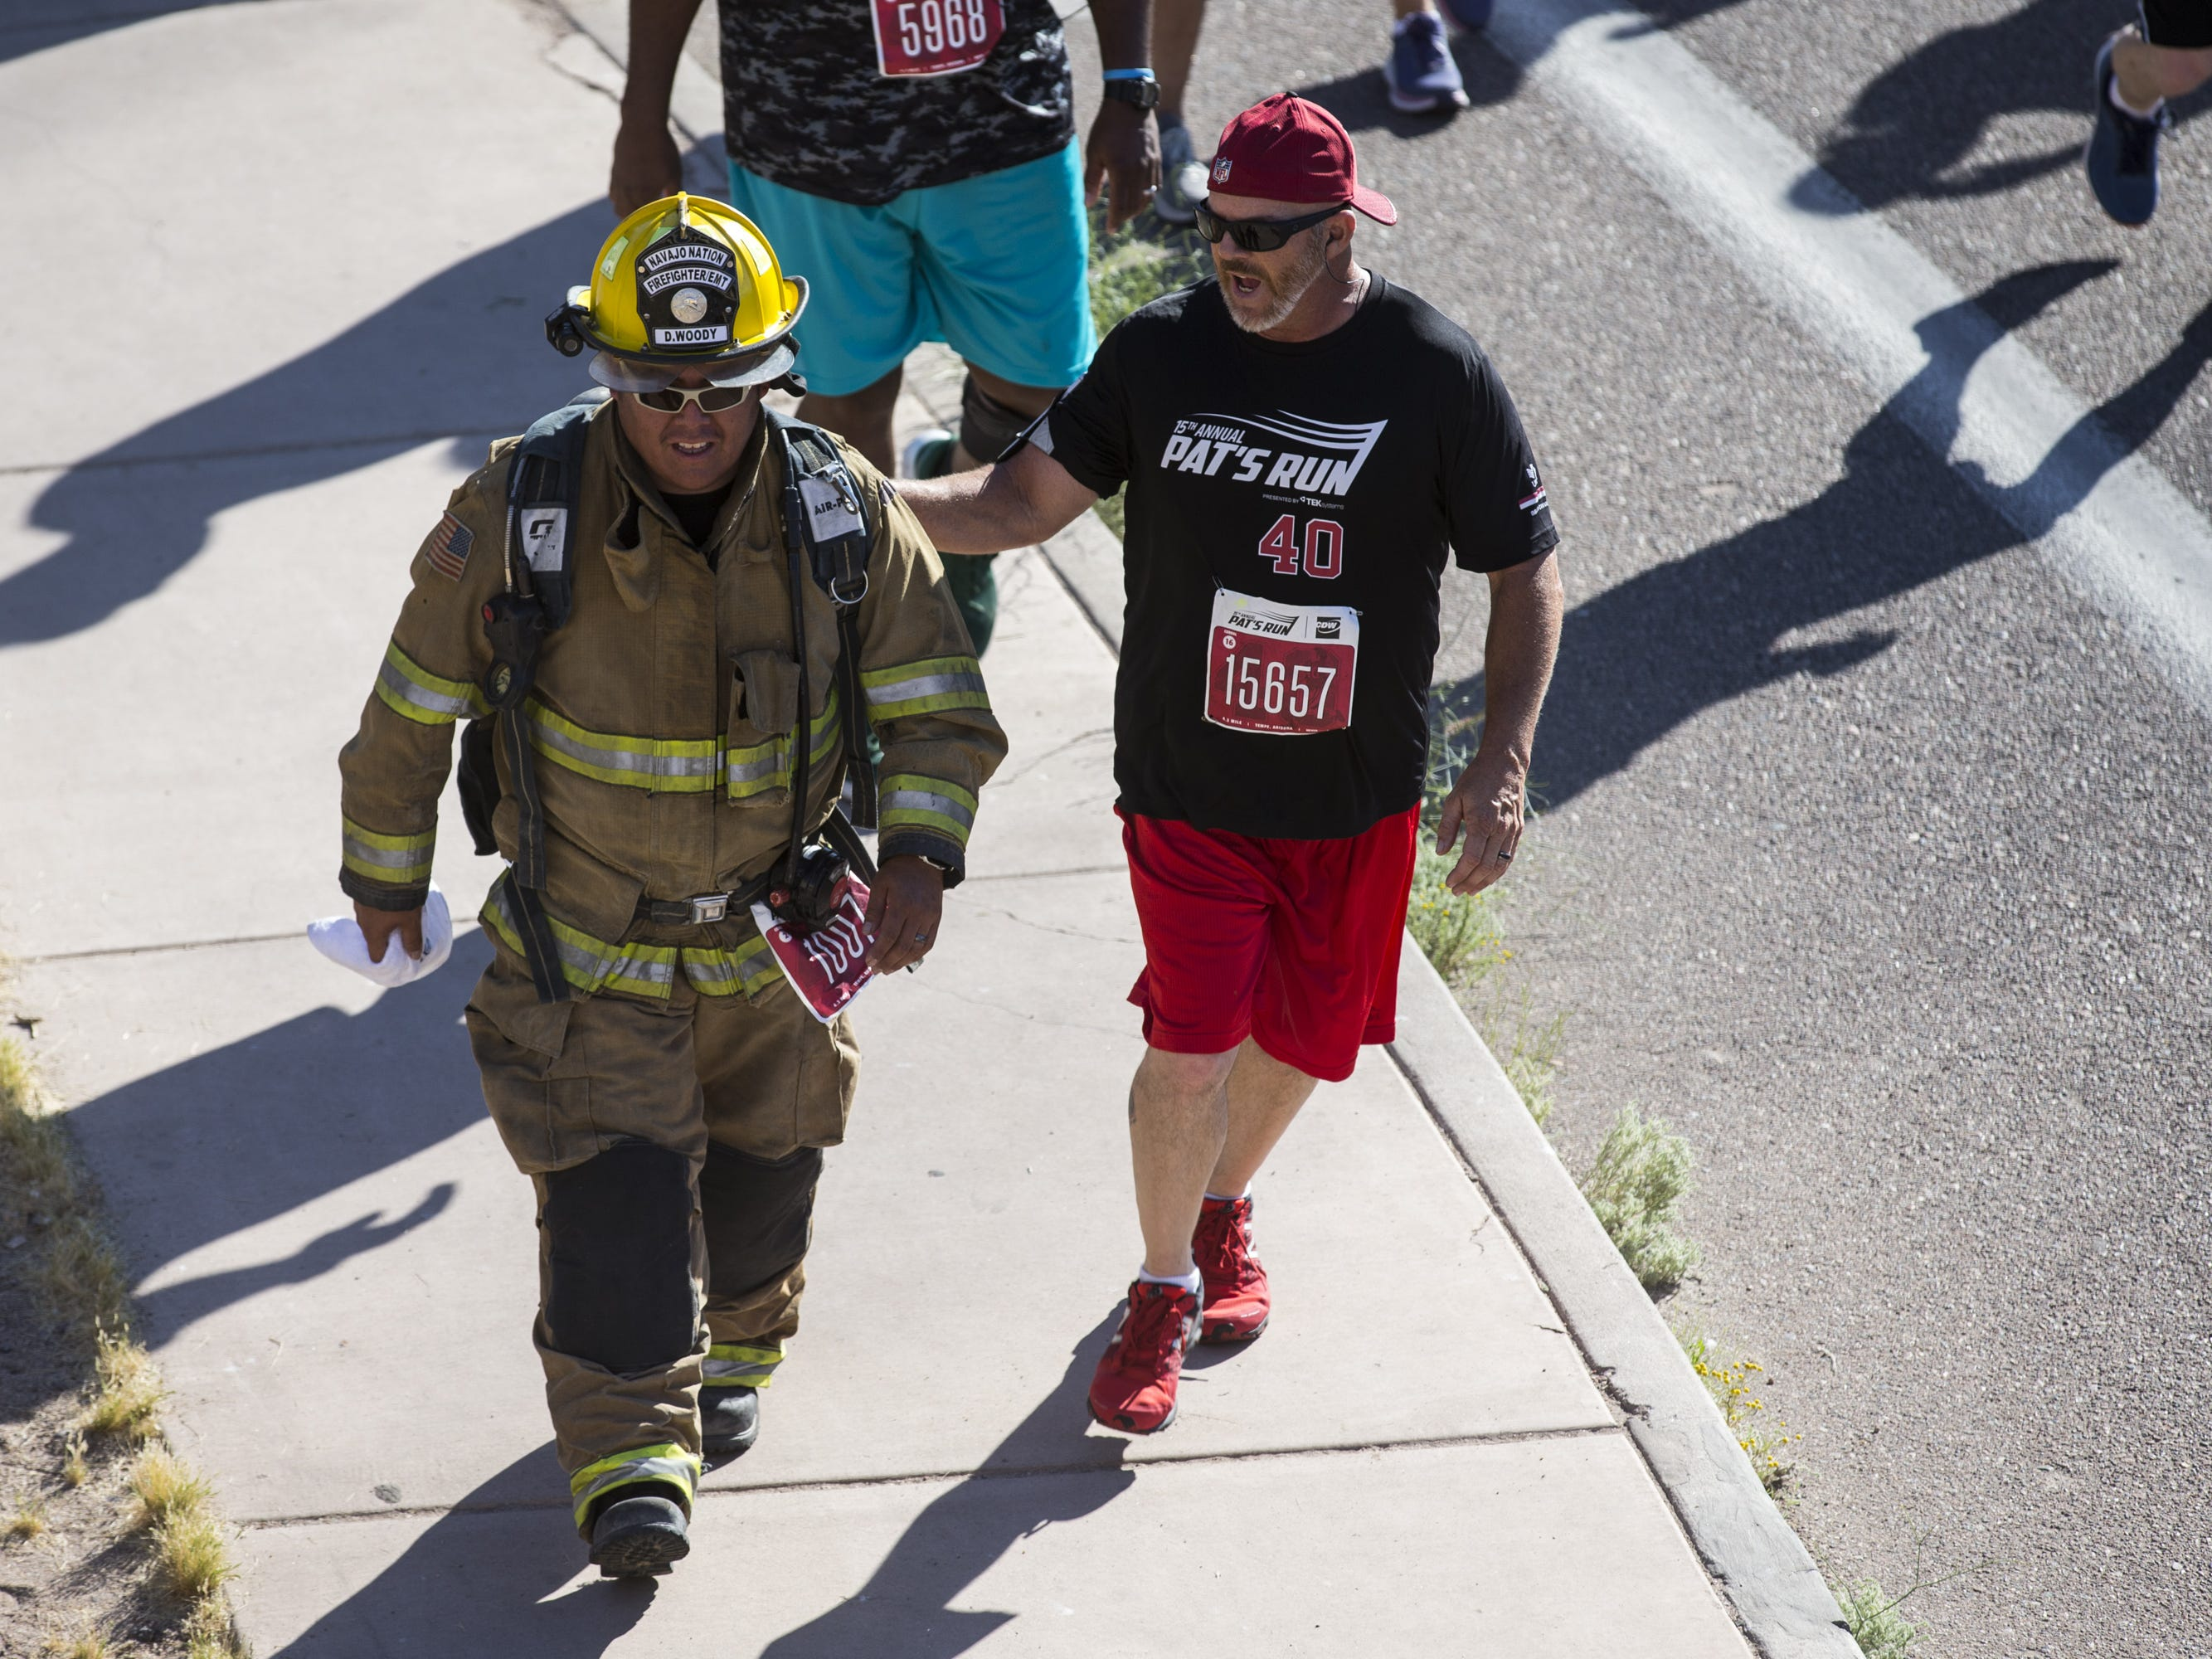 A participant encourages a man walking in firefighting gear during the 15th Annual Pat's Run on Saturday, April 27, 2019, in Tempe, Ariz.